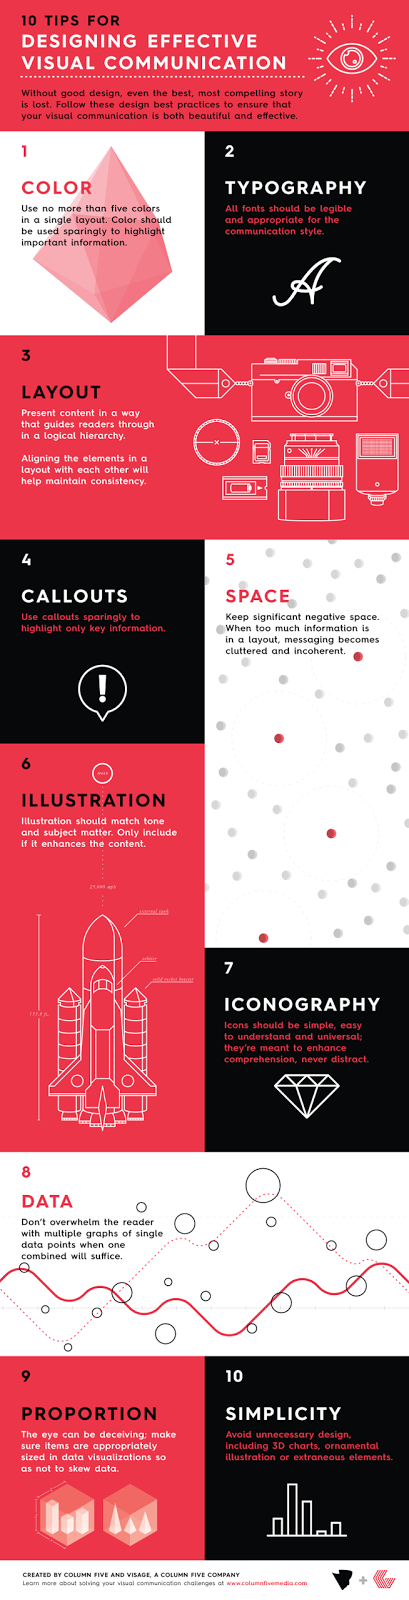 xchip graphics - 10 Tips To Designing Effective Infograhic